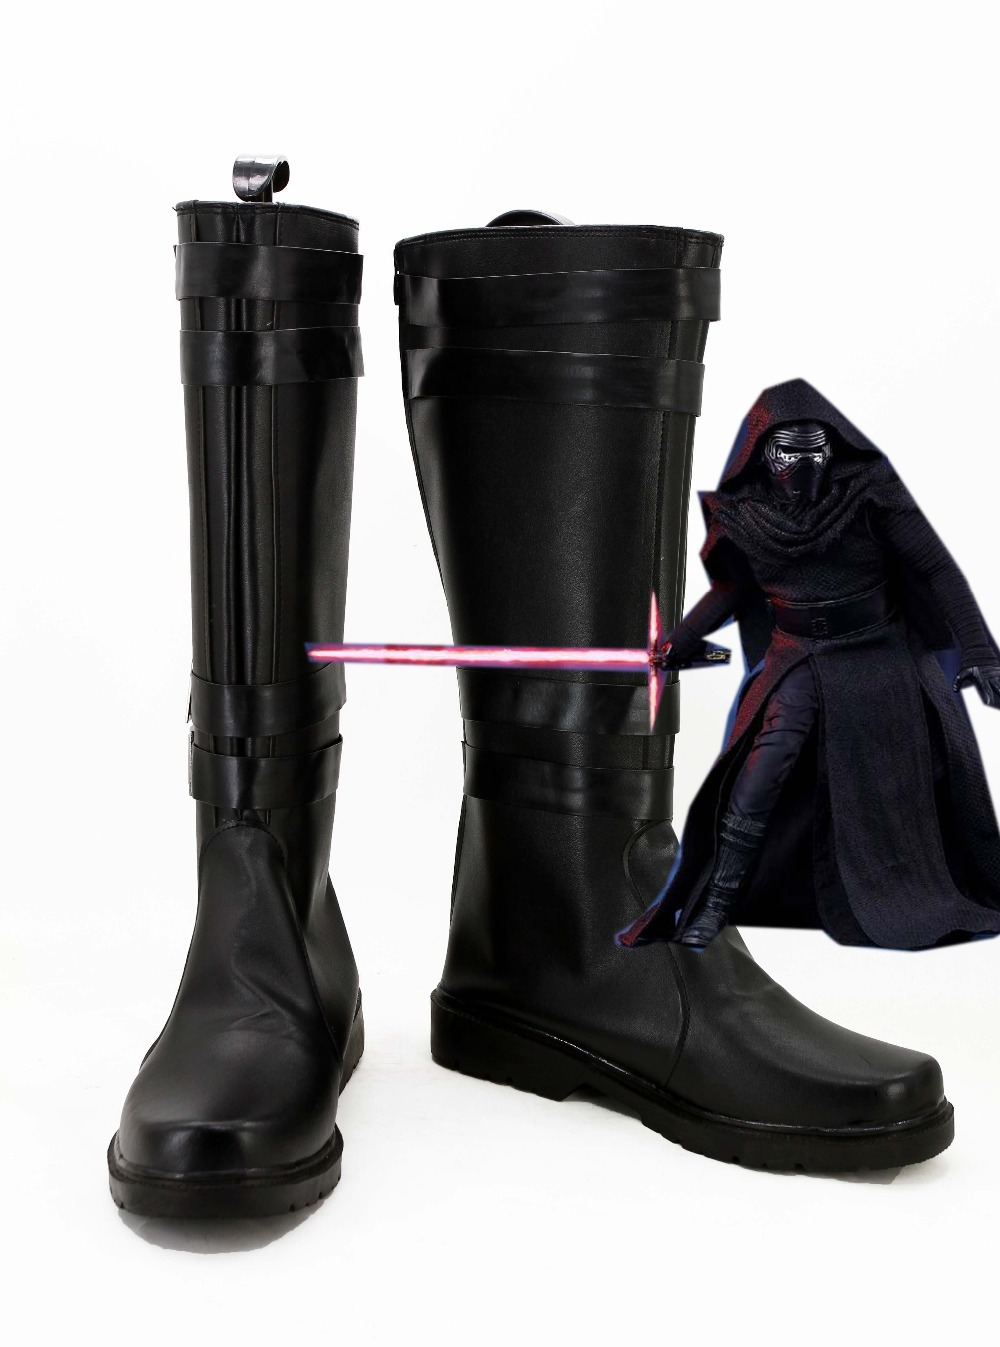 Star Wars 7 cosplay shoes The Force Awakens Kylo Ren Boots Moive Jedi Men Euro Size Halloween costumes